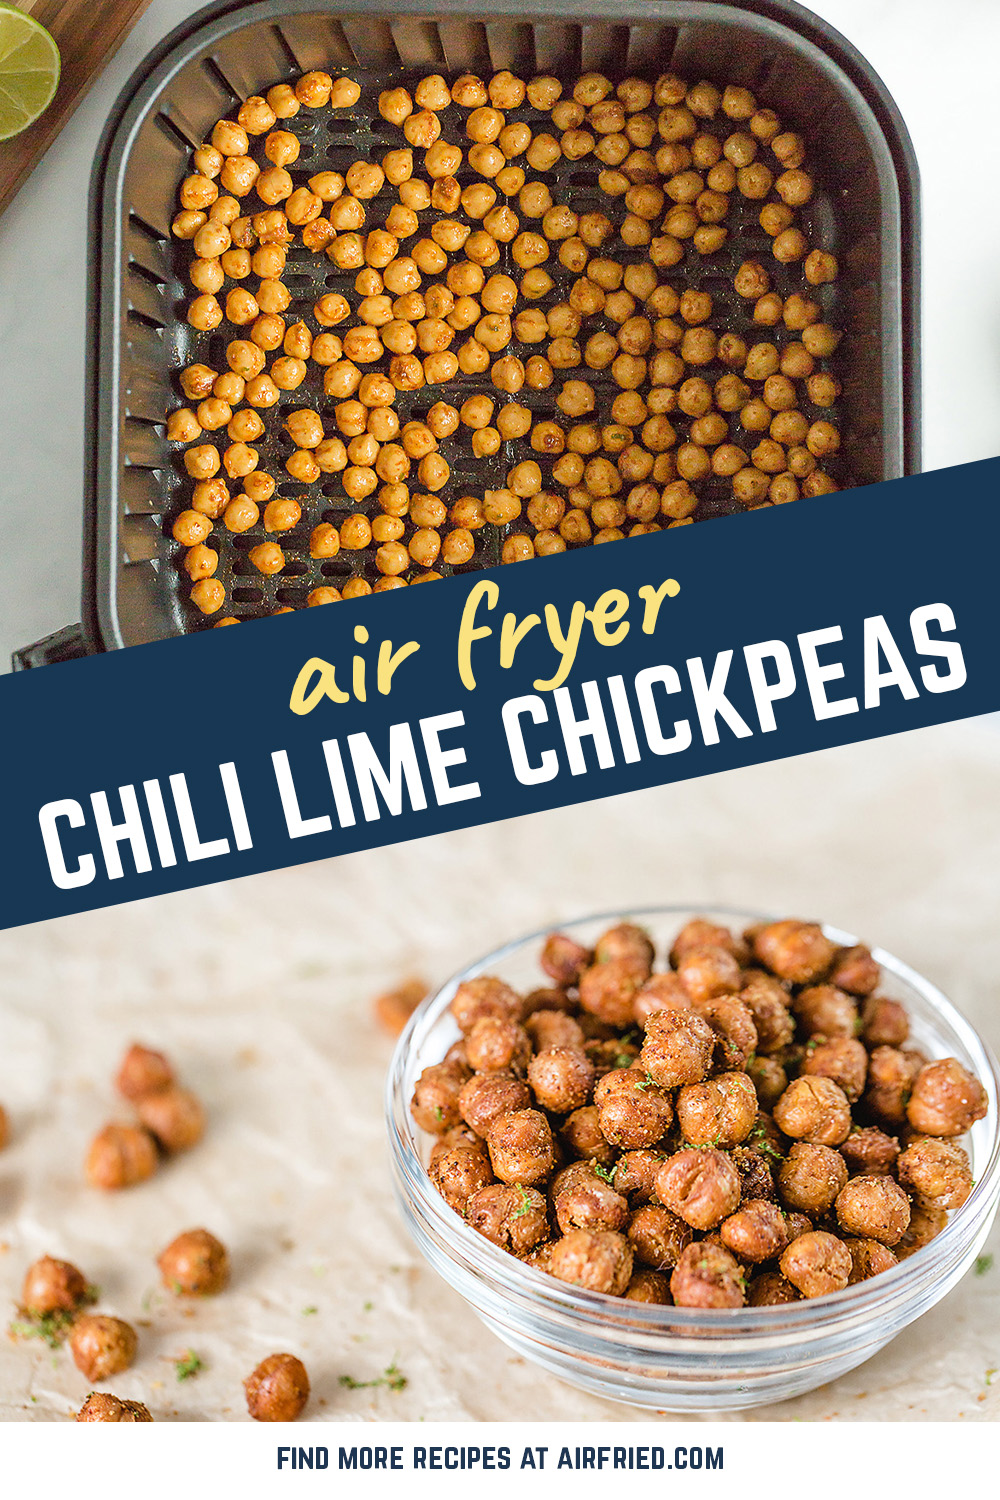 Garbanzo beans are a great, healthy snack for you and your family.  They are full of nutrients and taste fantastic! #airfryer #chickpeas #healthysnacks